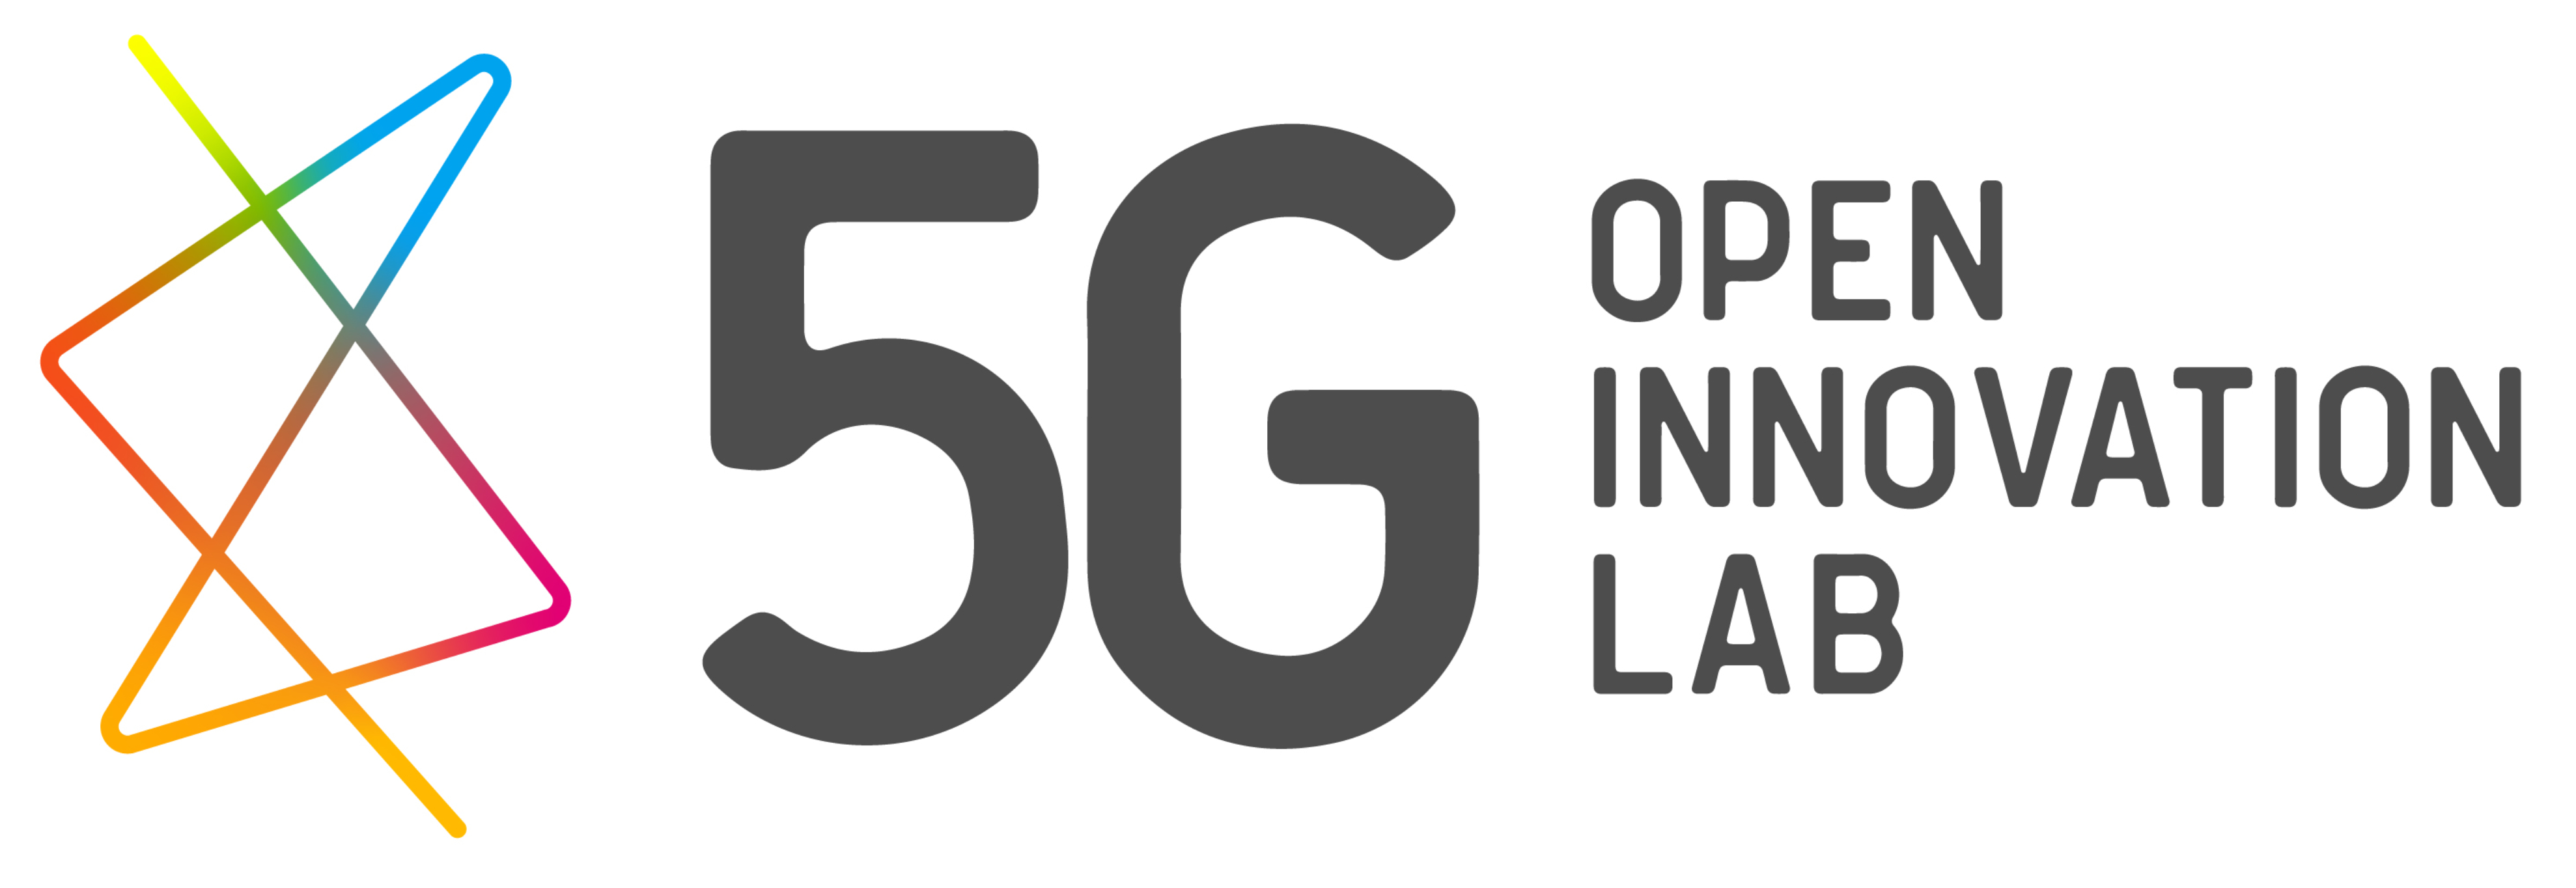 Continual joins the 5G Open Innovation Lab as a new member under the organization's Spring 2021 program